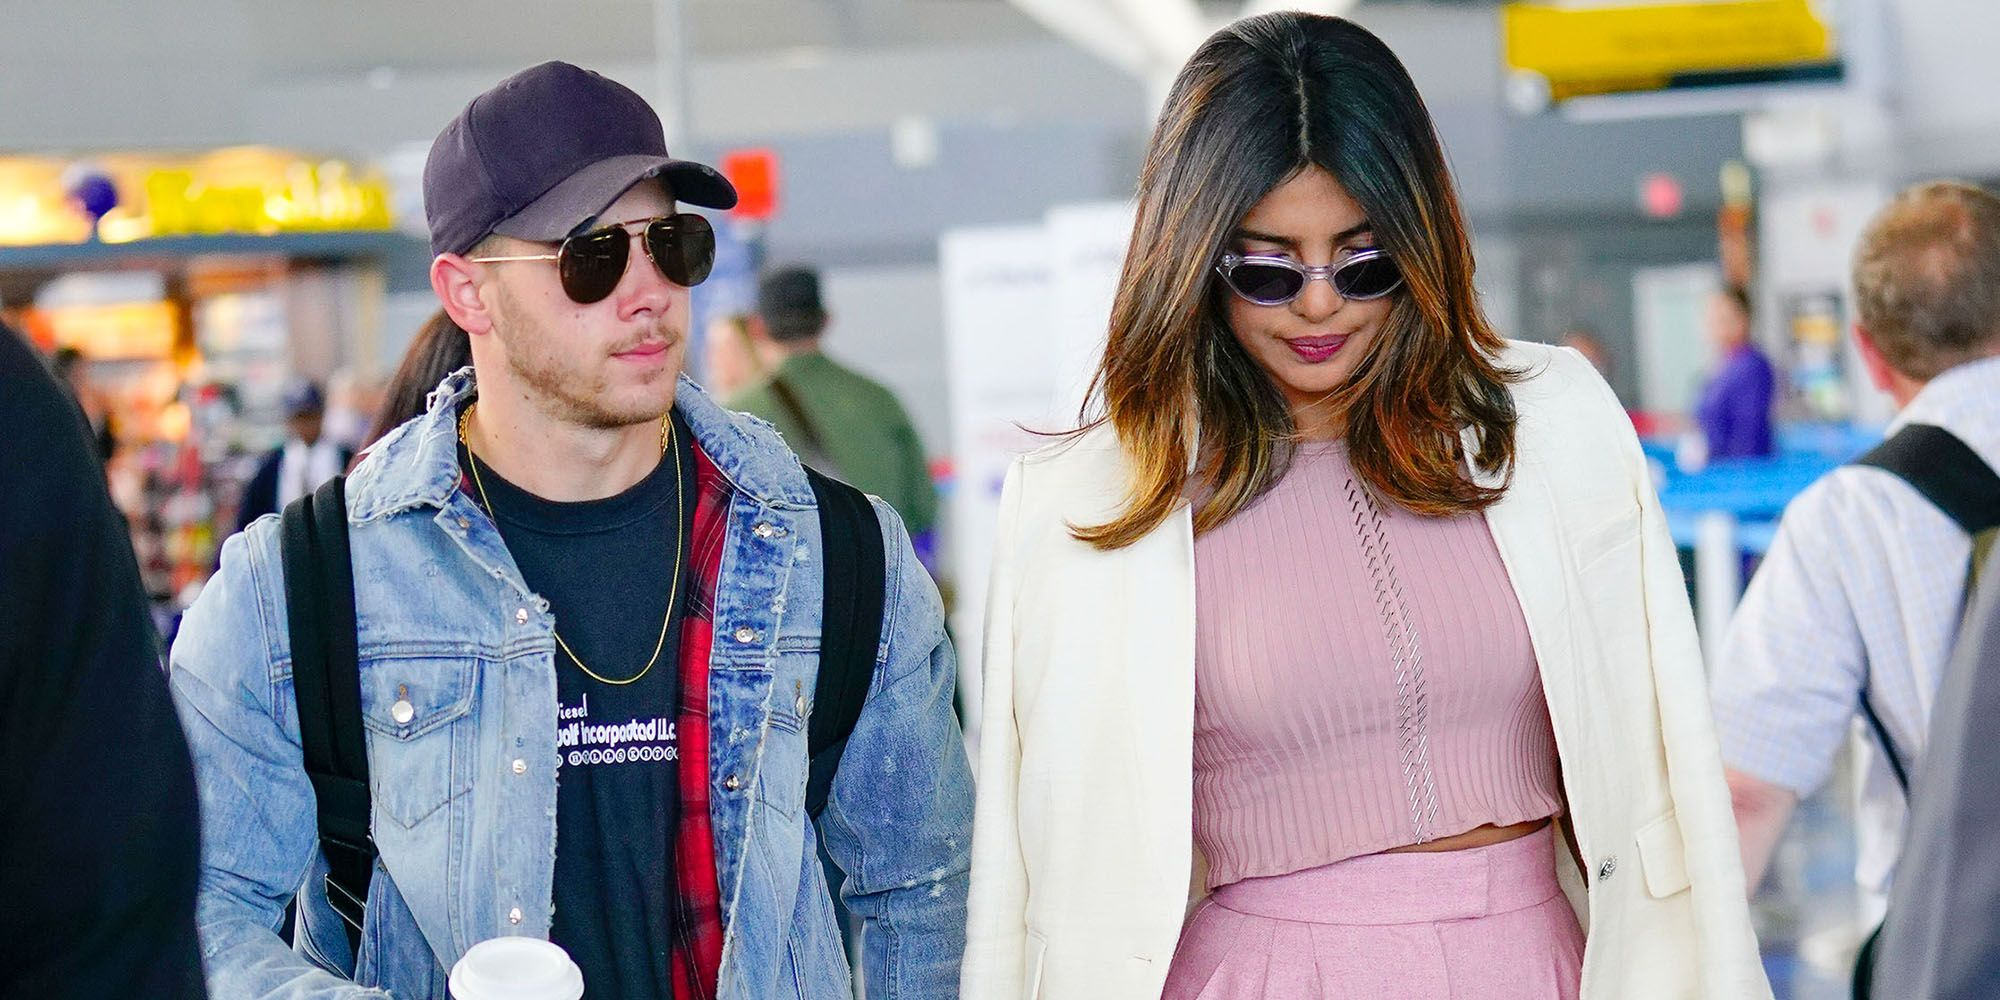 Nick Jonas And Priyanka Chopra Appear to Have Gone Instagram Official